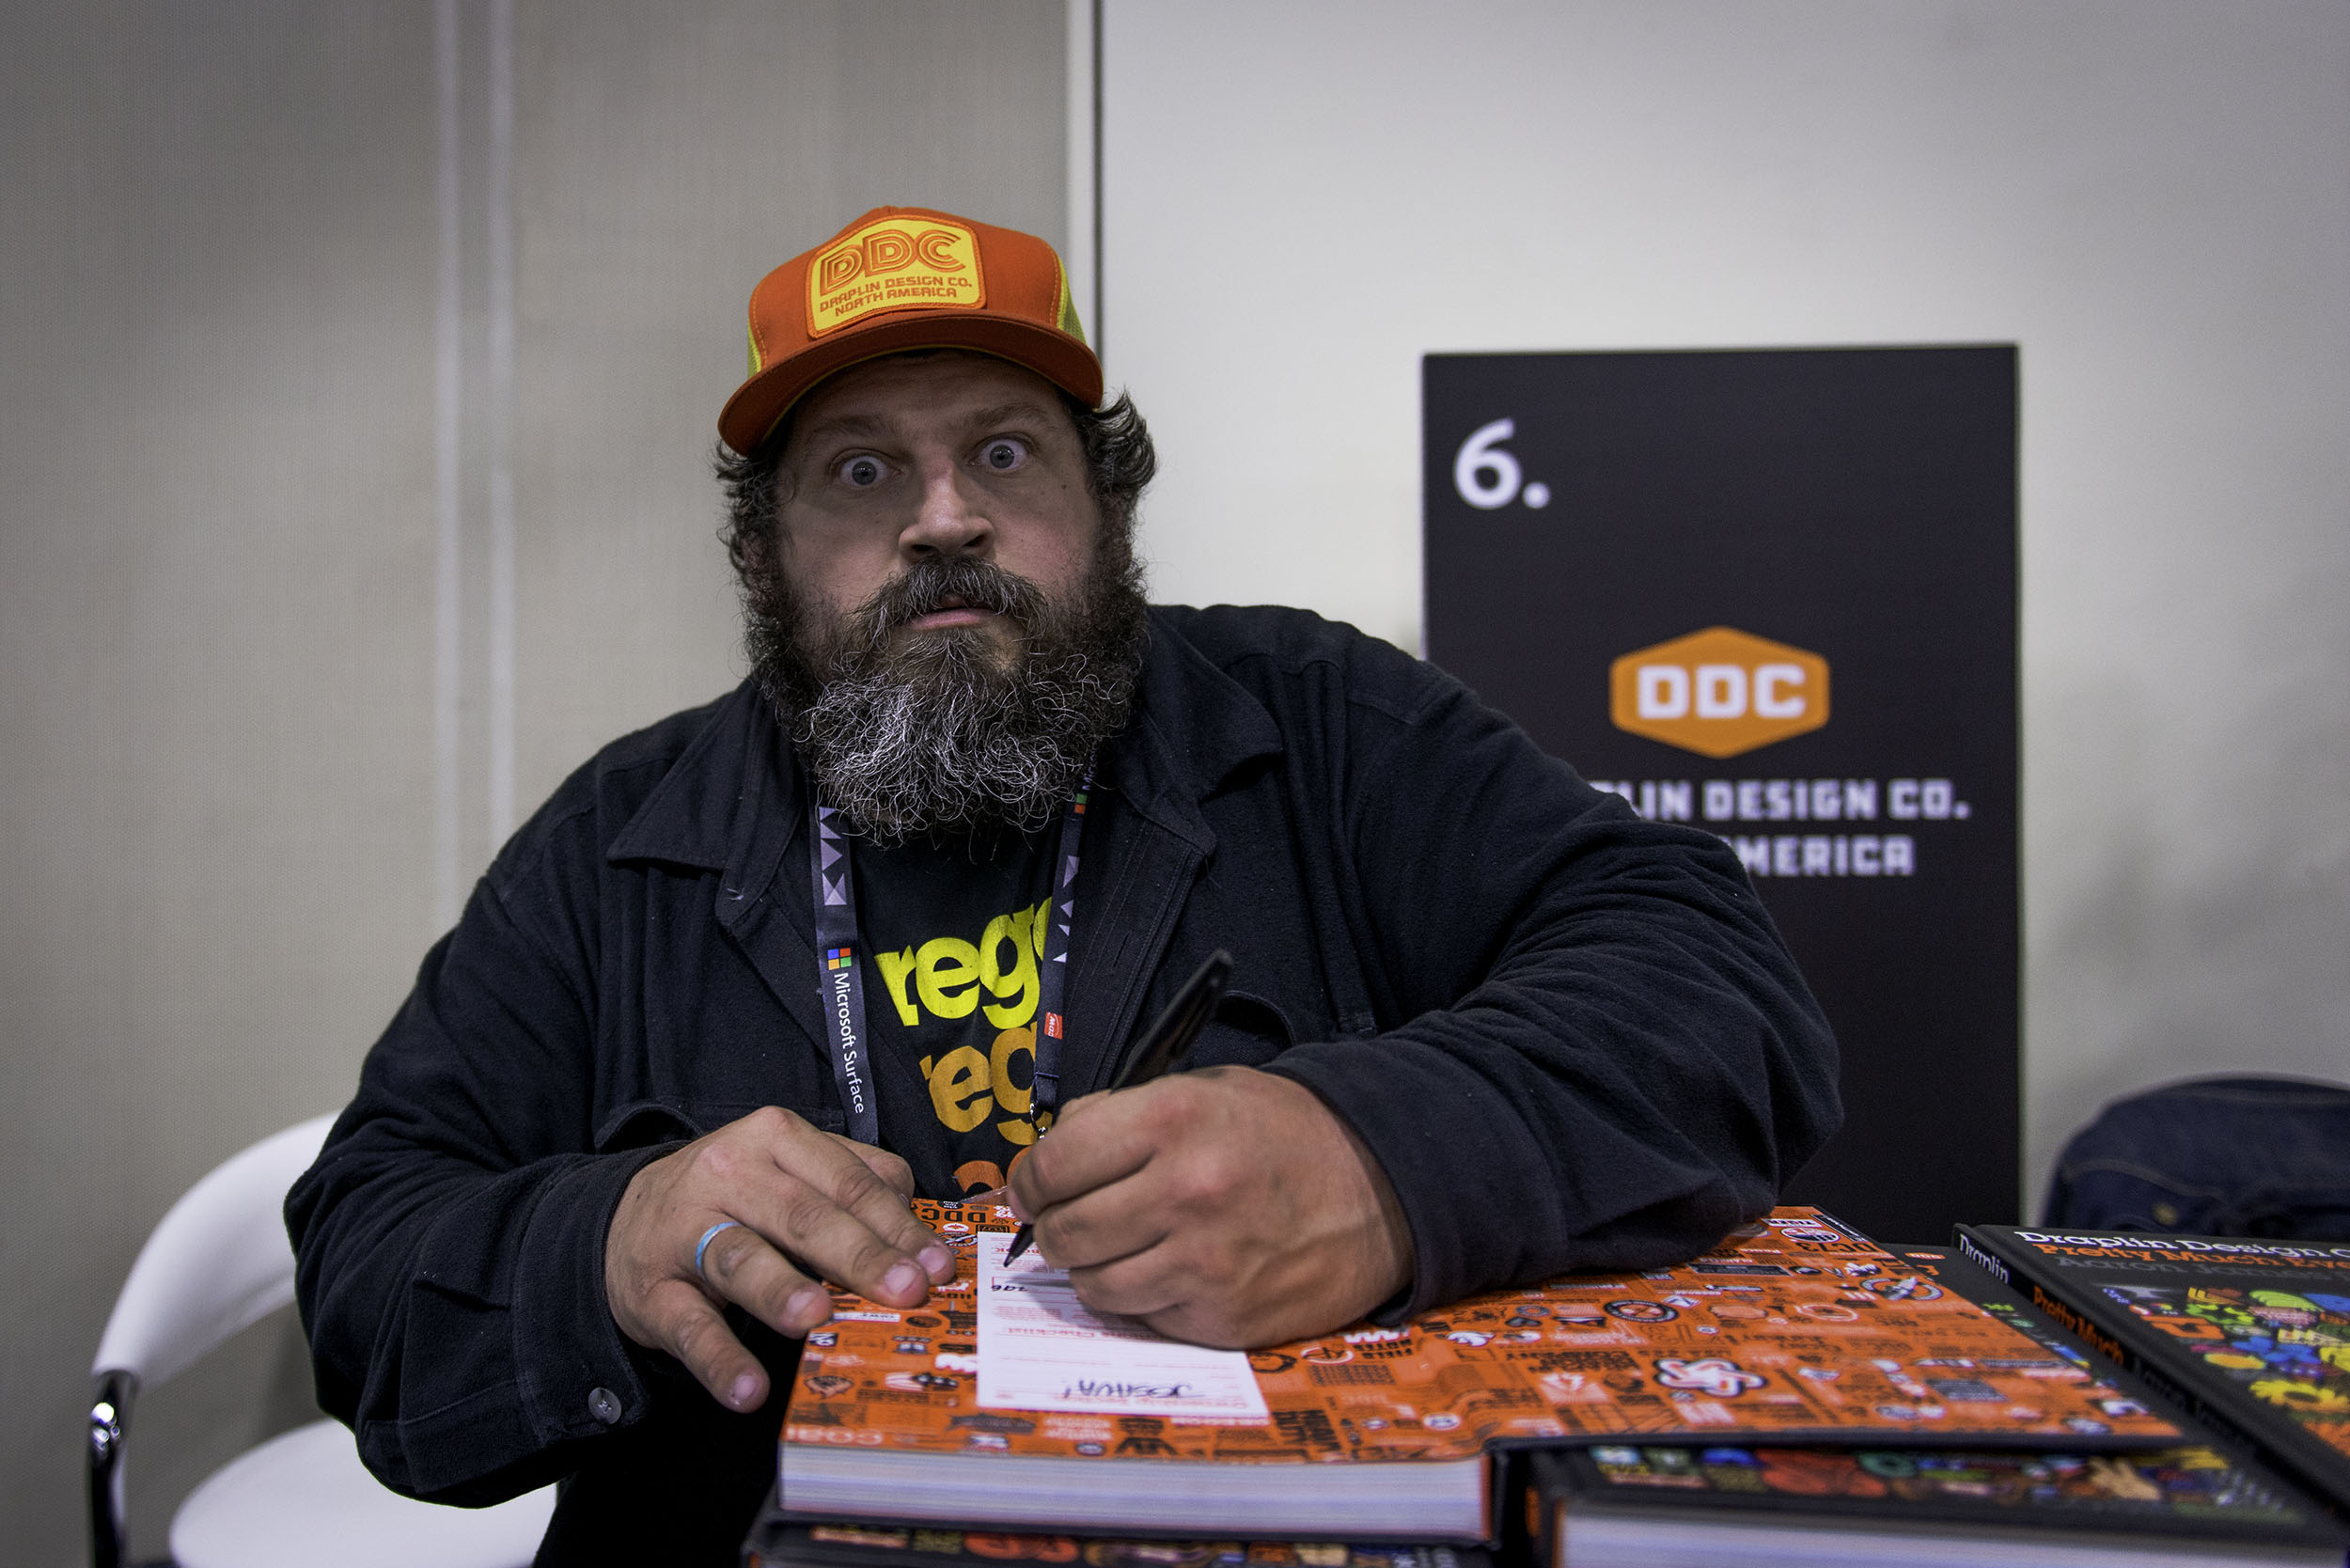 While at AdobeMax this past year, I got a chance to listen to the inspiring  Aaron Draplin  speak on everything design related as well as his background story. Aaron is one of the few dudes in the industry that I really look up to. From his literal hands-on design approach, his dedication, to his independent nature, he tackles every part of the design aspect on his own. After getting the chance to speak with him, I was a fan even more. His down to Earth attitude and warm hearted charisma made it super pleasant to just have an easy going conversation. I used to think that maybe I was trying to do too much at once. But Aaron has inspired to stay ambitious and continue to persevere. Getting to meet him was truly a humbling experience and I hope one day I get the pleasure to collaborate with him.